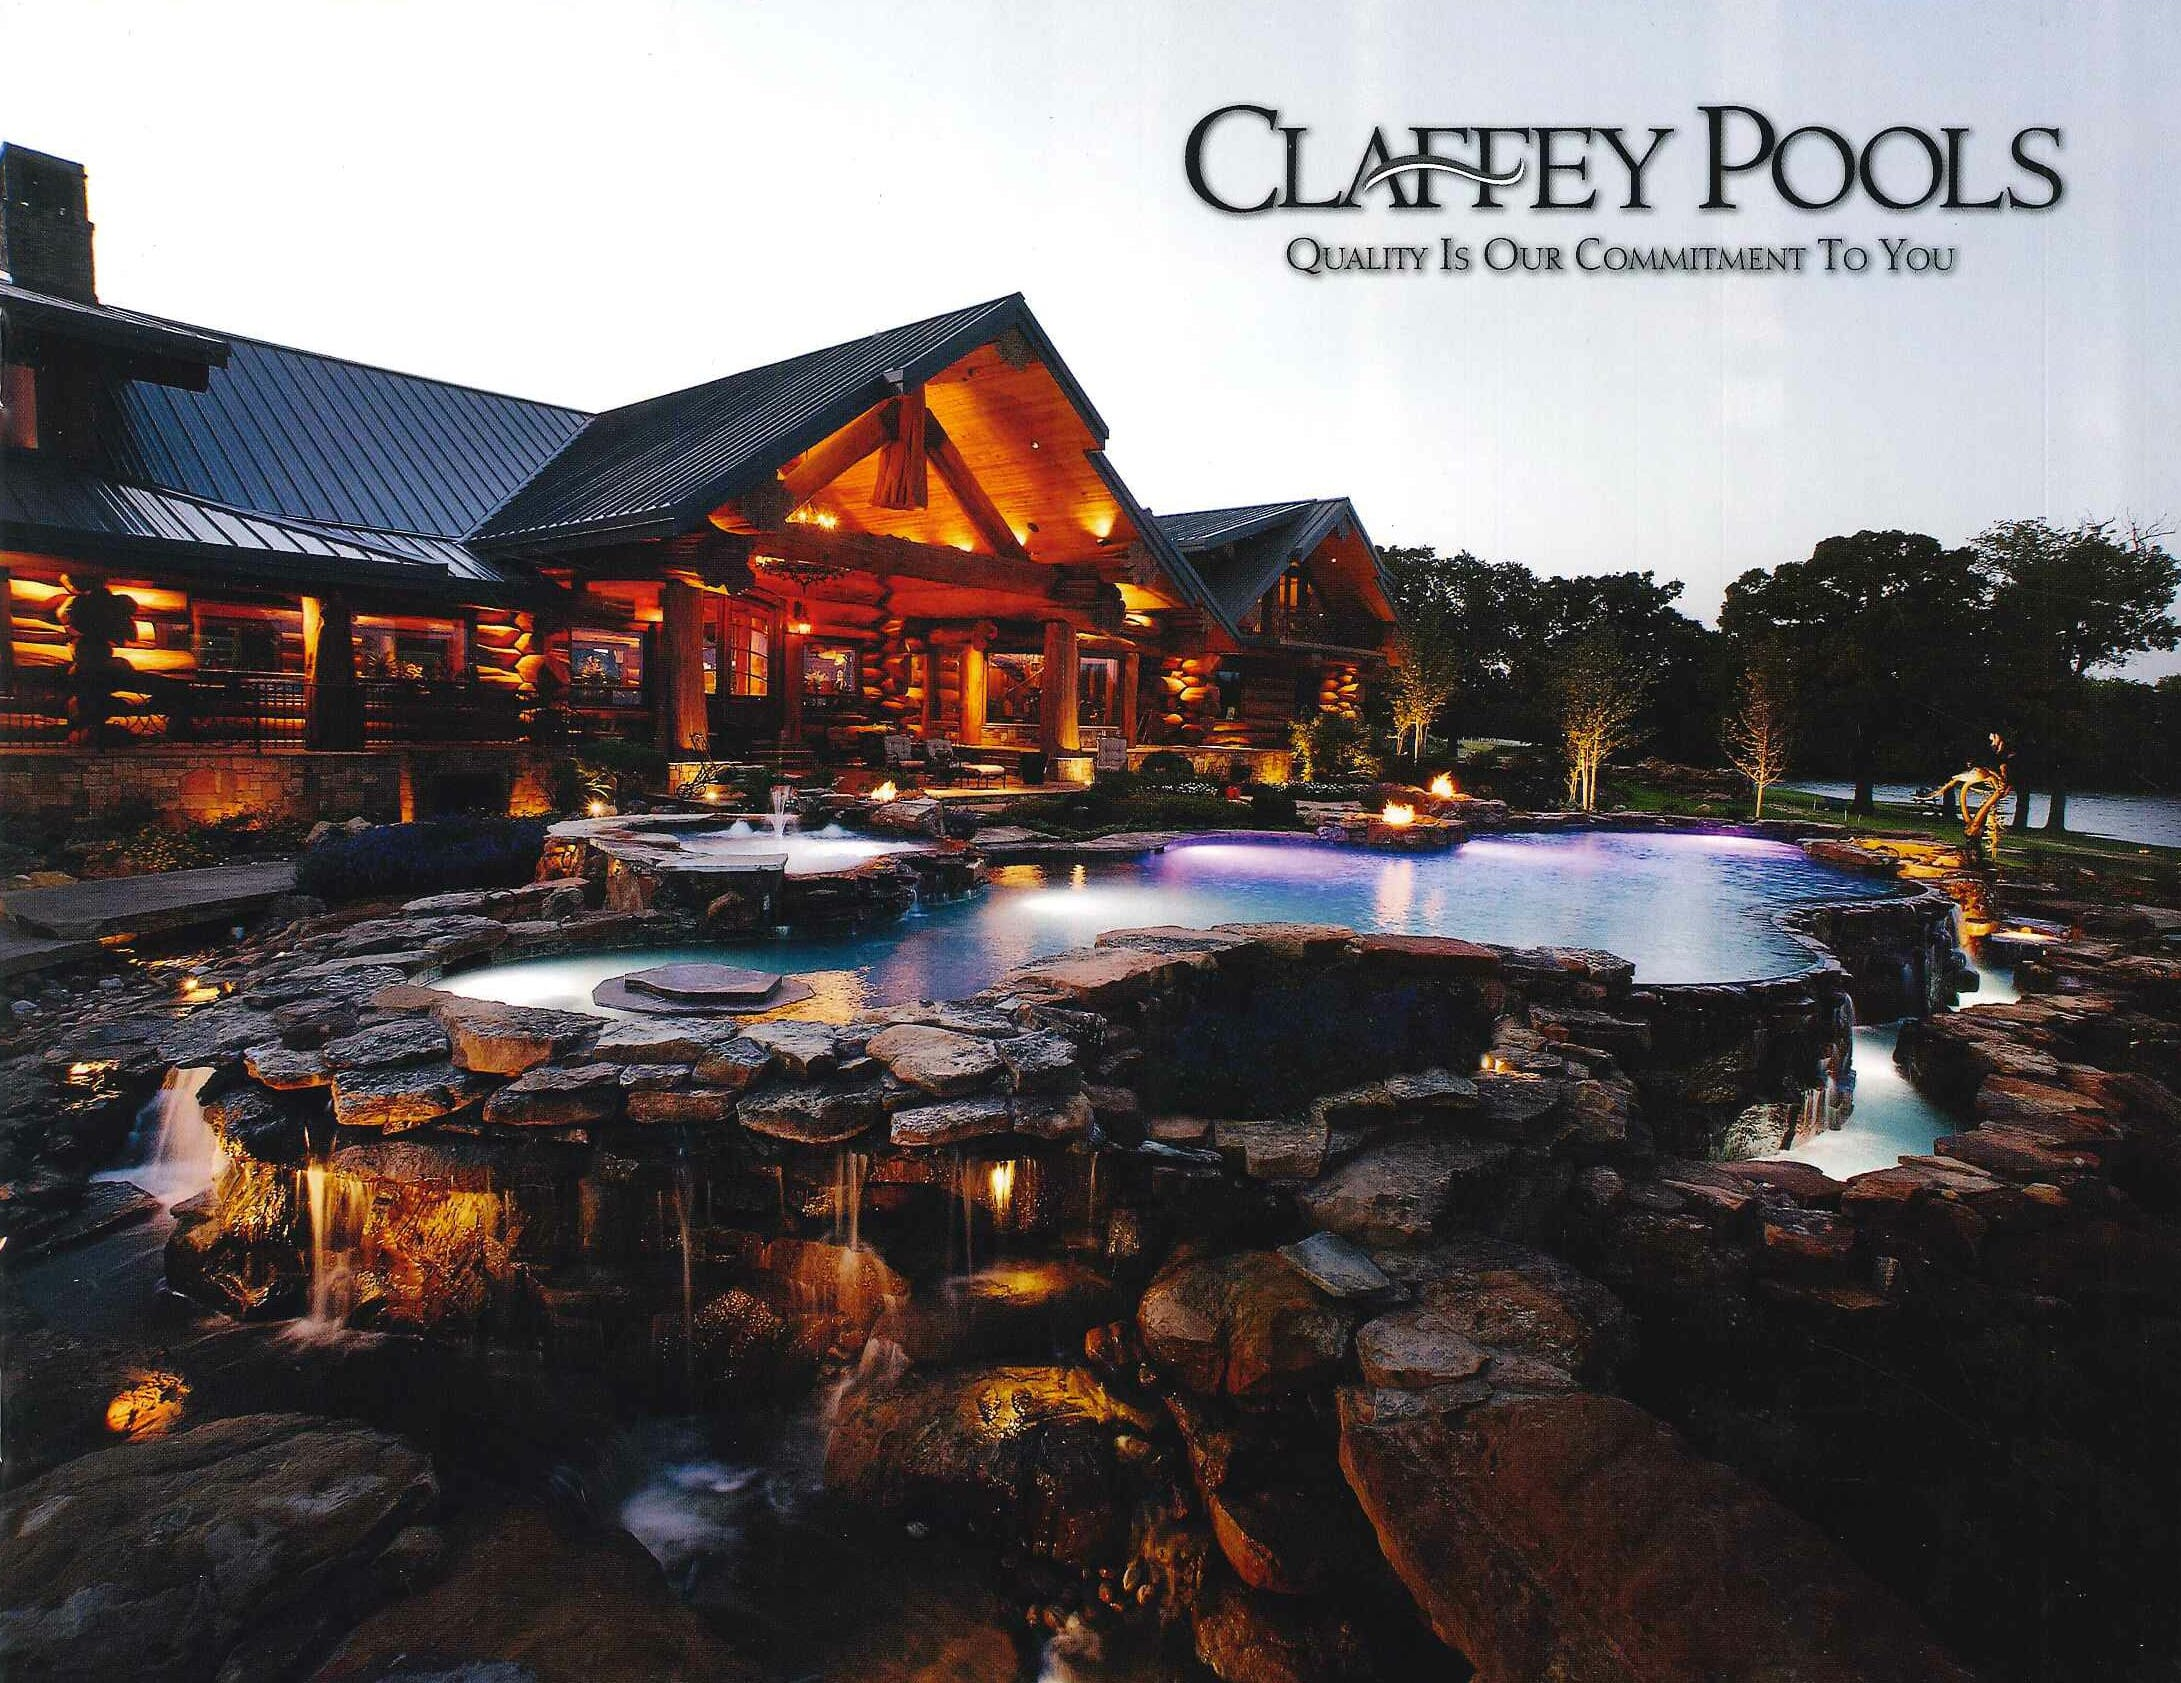 2008 - Developed a proprietary computer-based pricing model that guarantees accuracy and timely pricing (within just 10 minutes).Claffey Pools constructed their 5,000th pool.Paul constructed pool #5128, which was the second pool for his first customers, The Daniels Family.